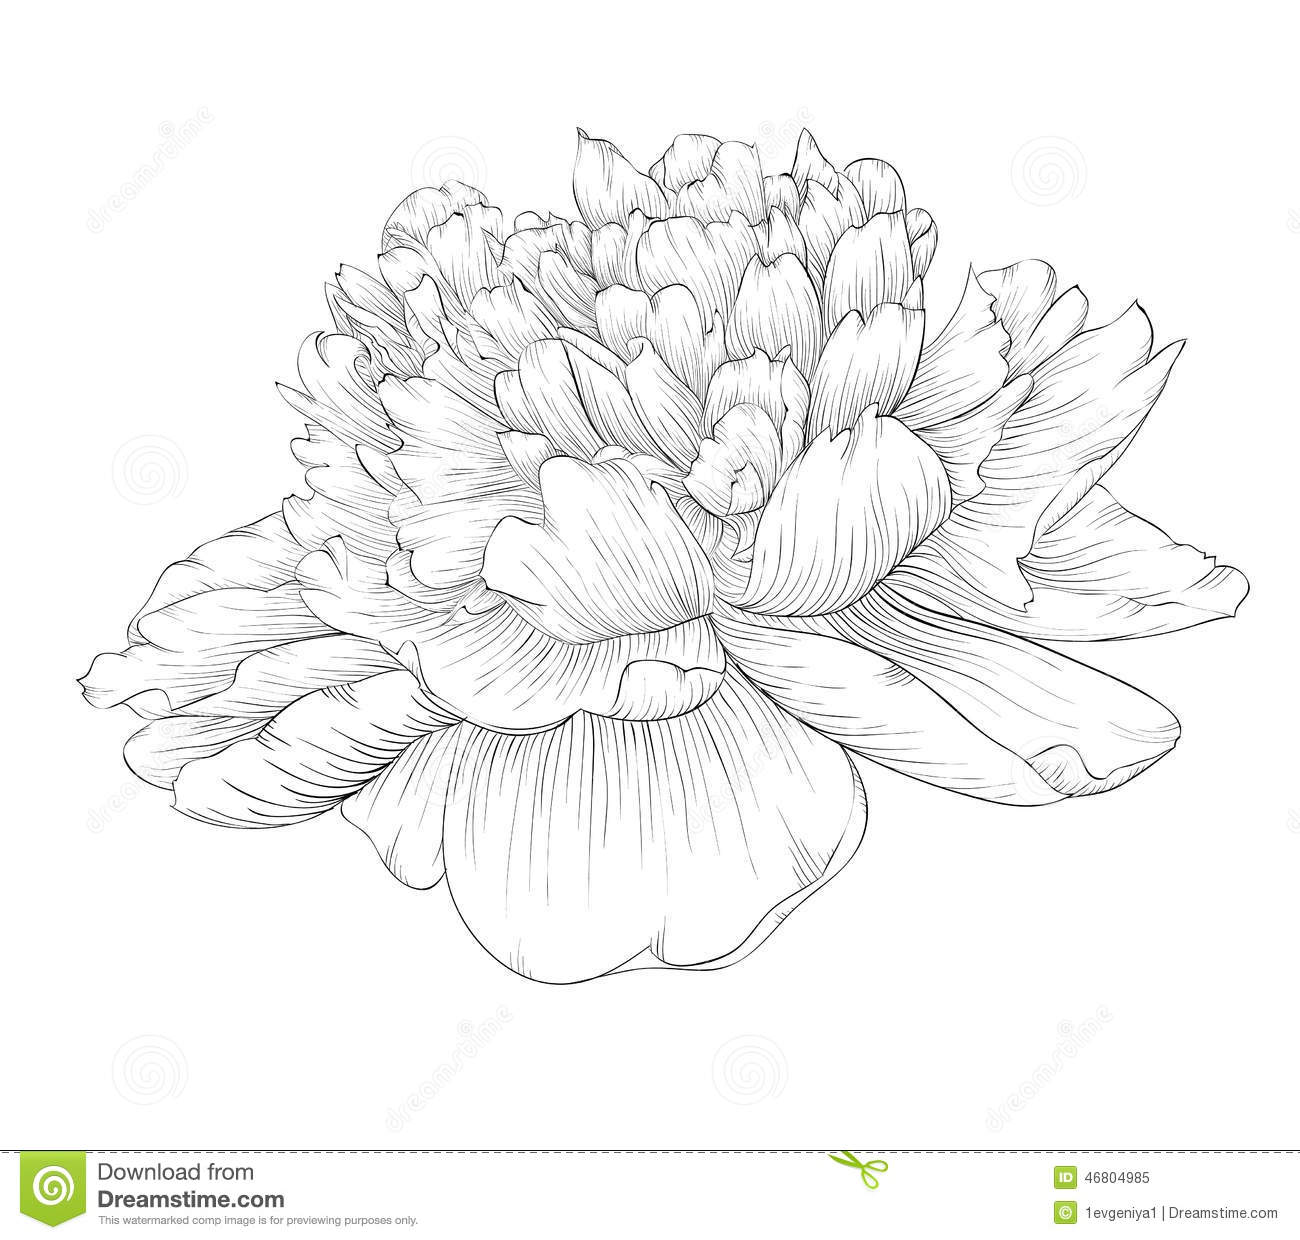 Peony flower isolated on white stock vector 368014568 shutterstock - Fully Open Peony Flower Monochrome Drawing For Coloring Book Hand